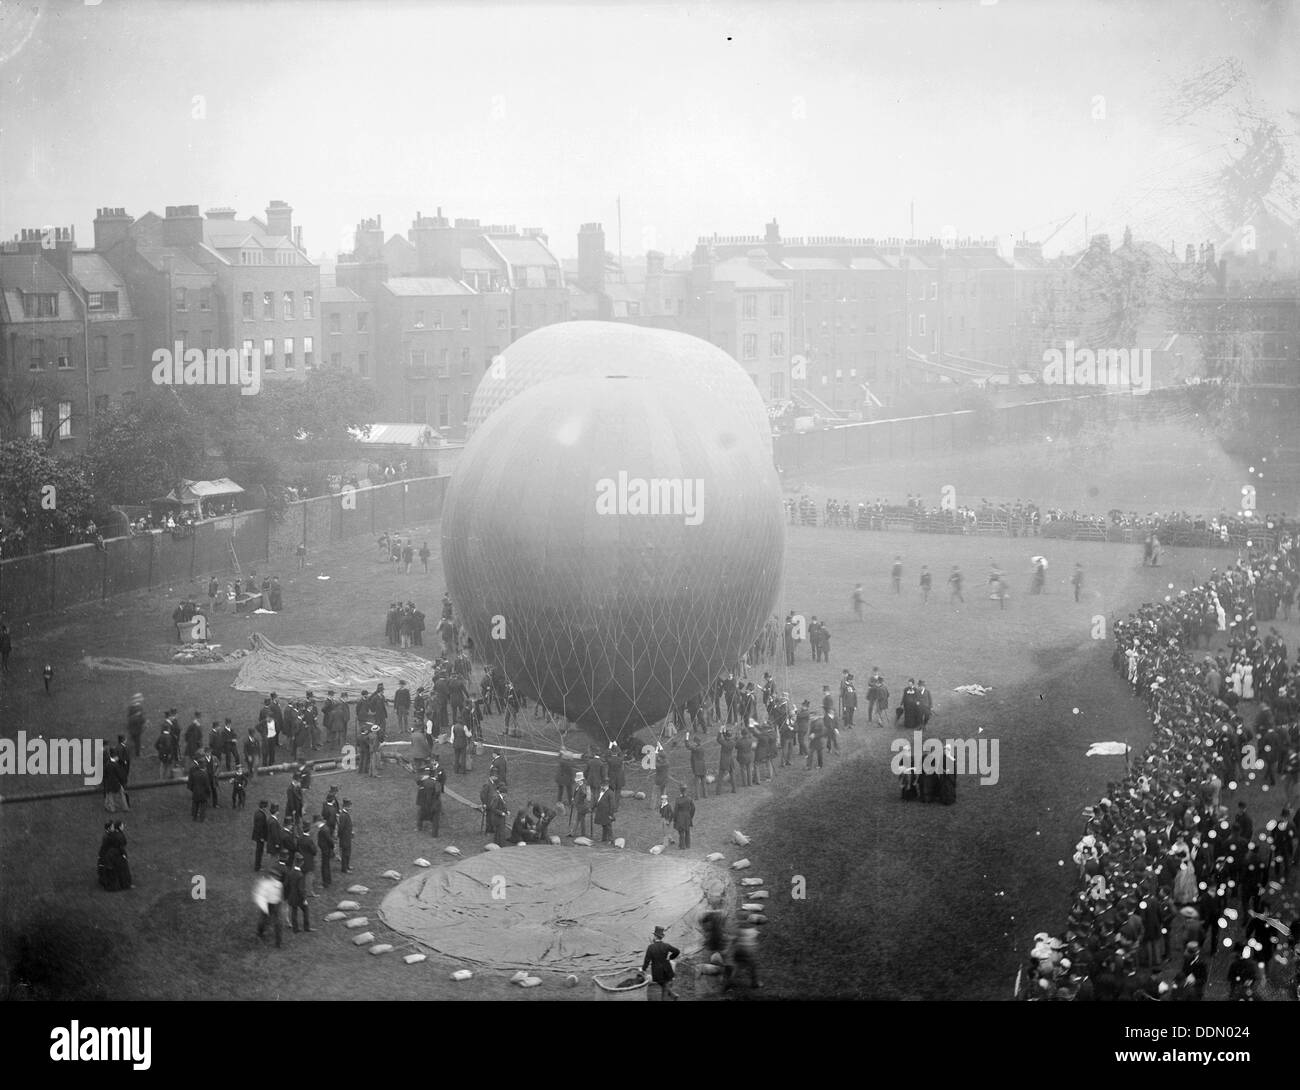 Hot air balloons at Armoury House, Finsbury, Islington, London, c1860-c1922. Artist: Henry Taunt - Stock Image